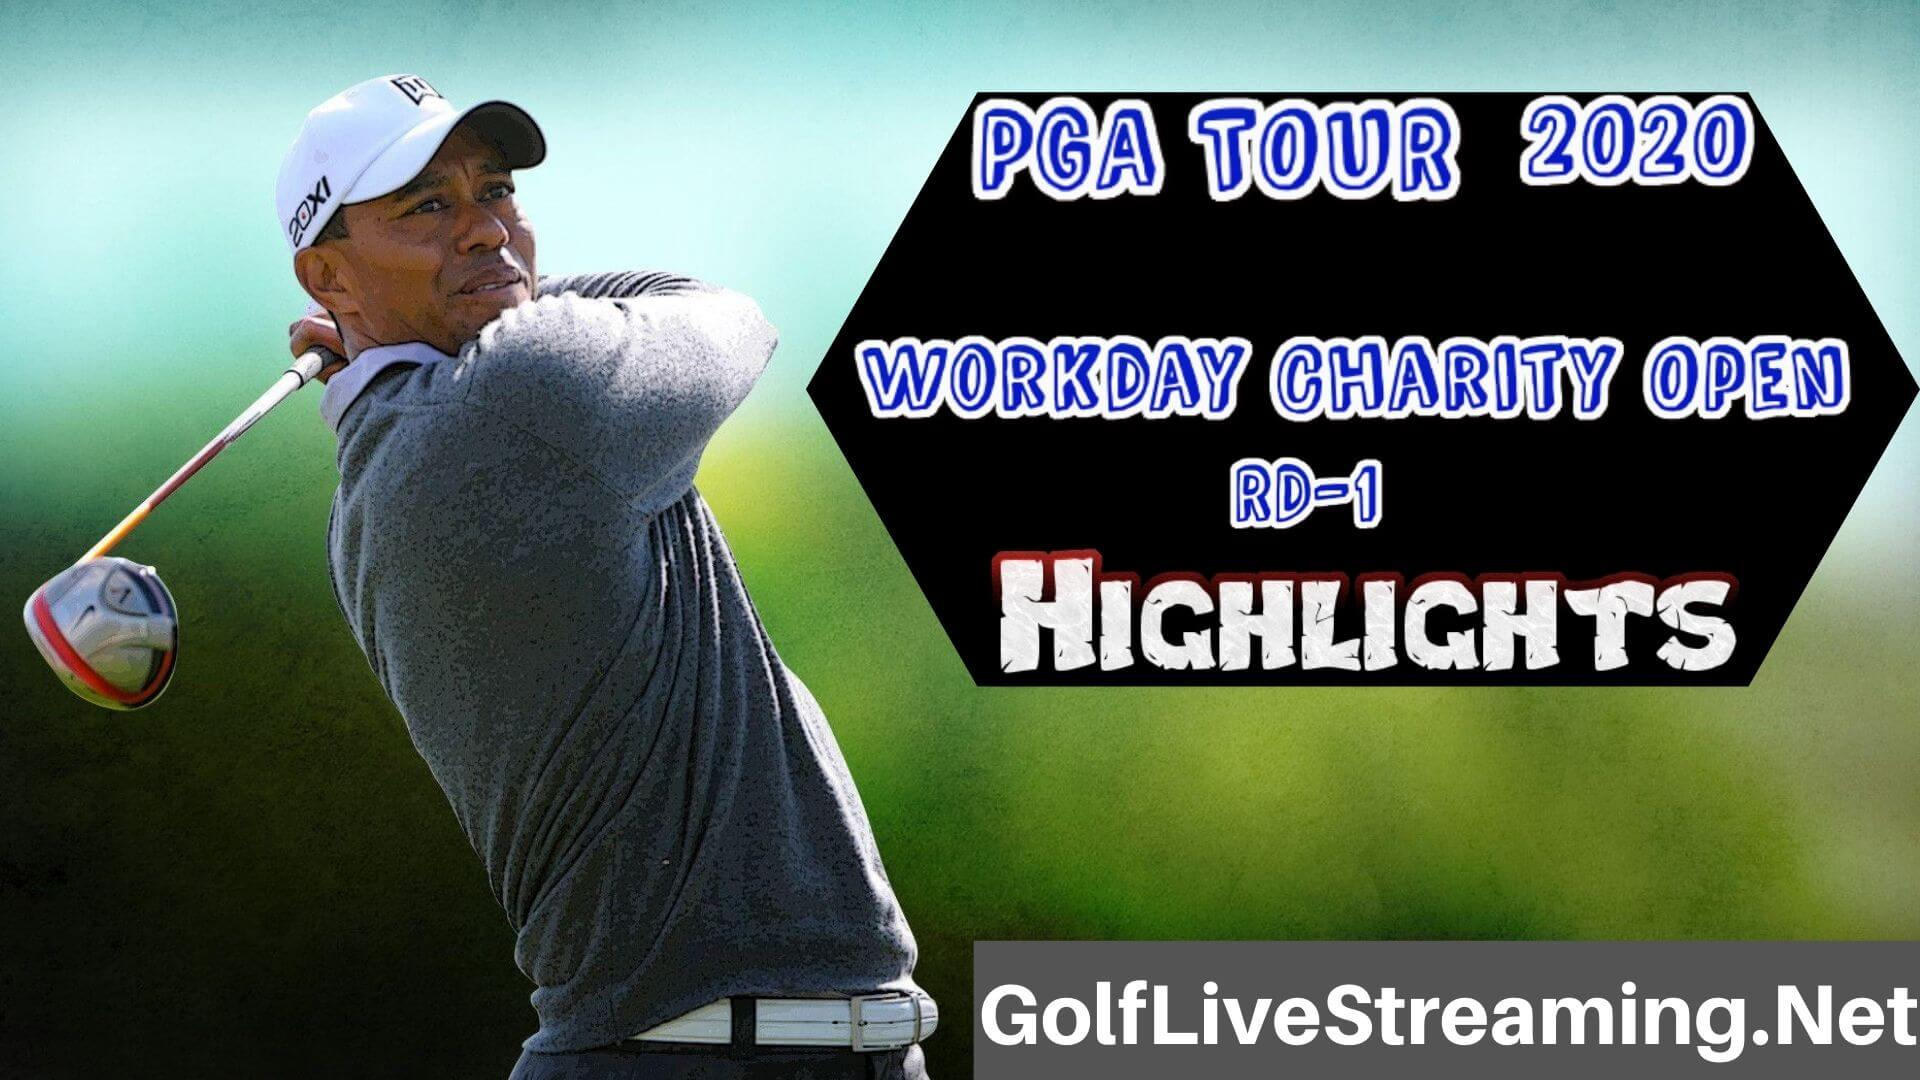 Workday Charity Open Rd 1 Highlights 2020 PGA TOUR